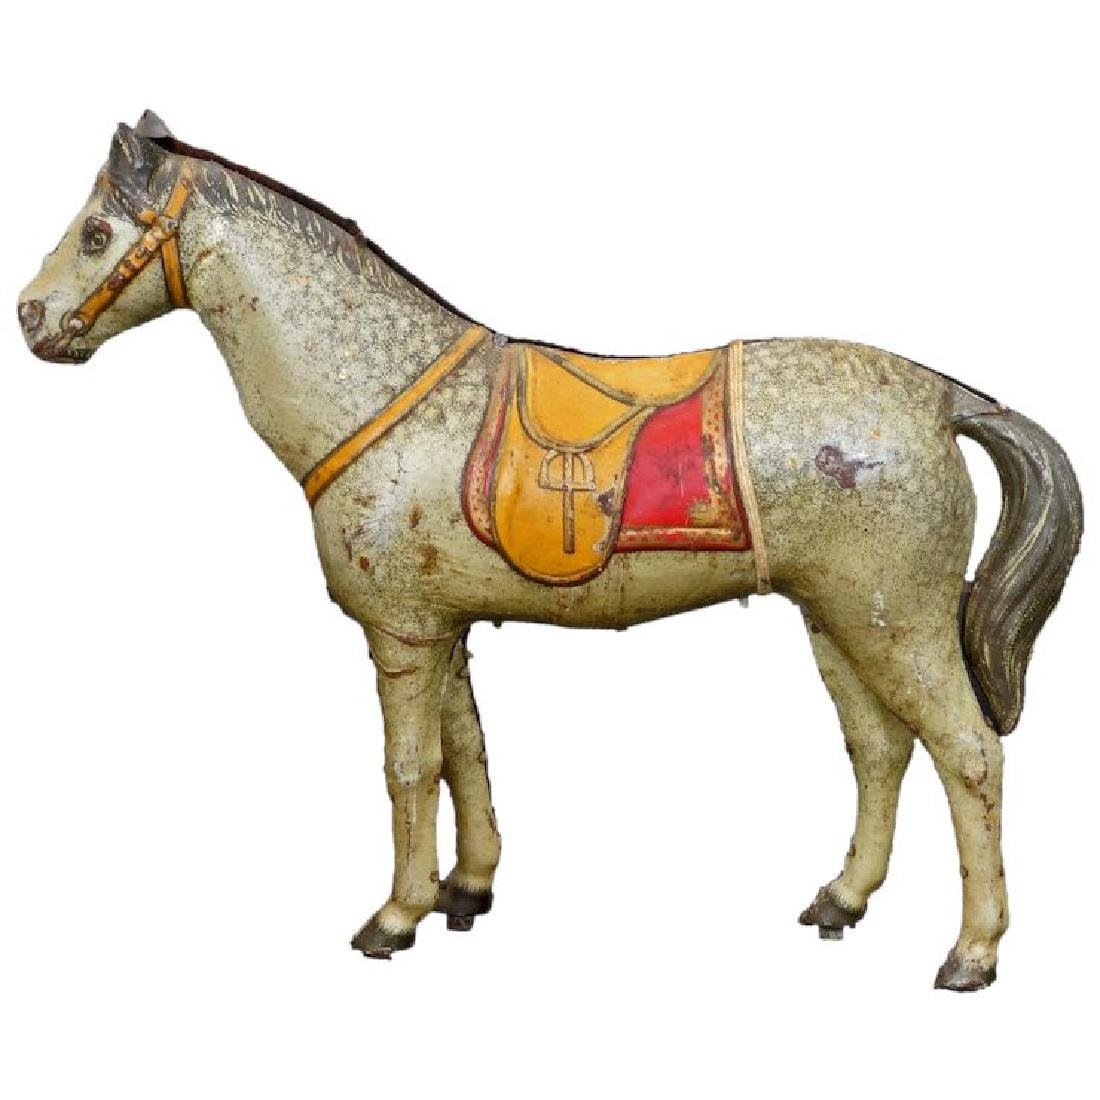 Antique tin lithographed horse toy c 1880